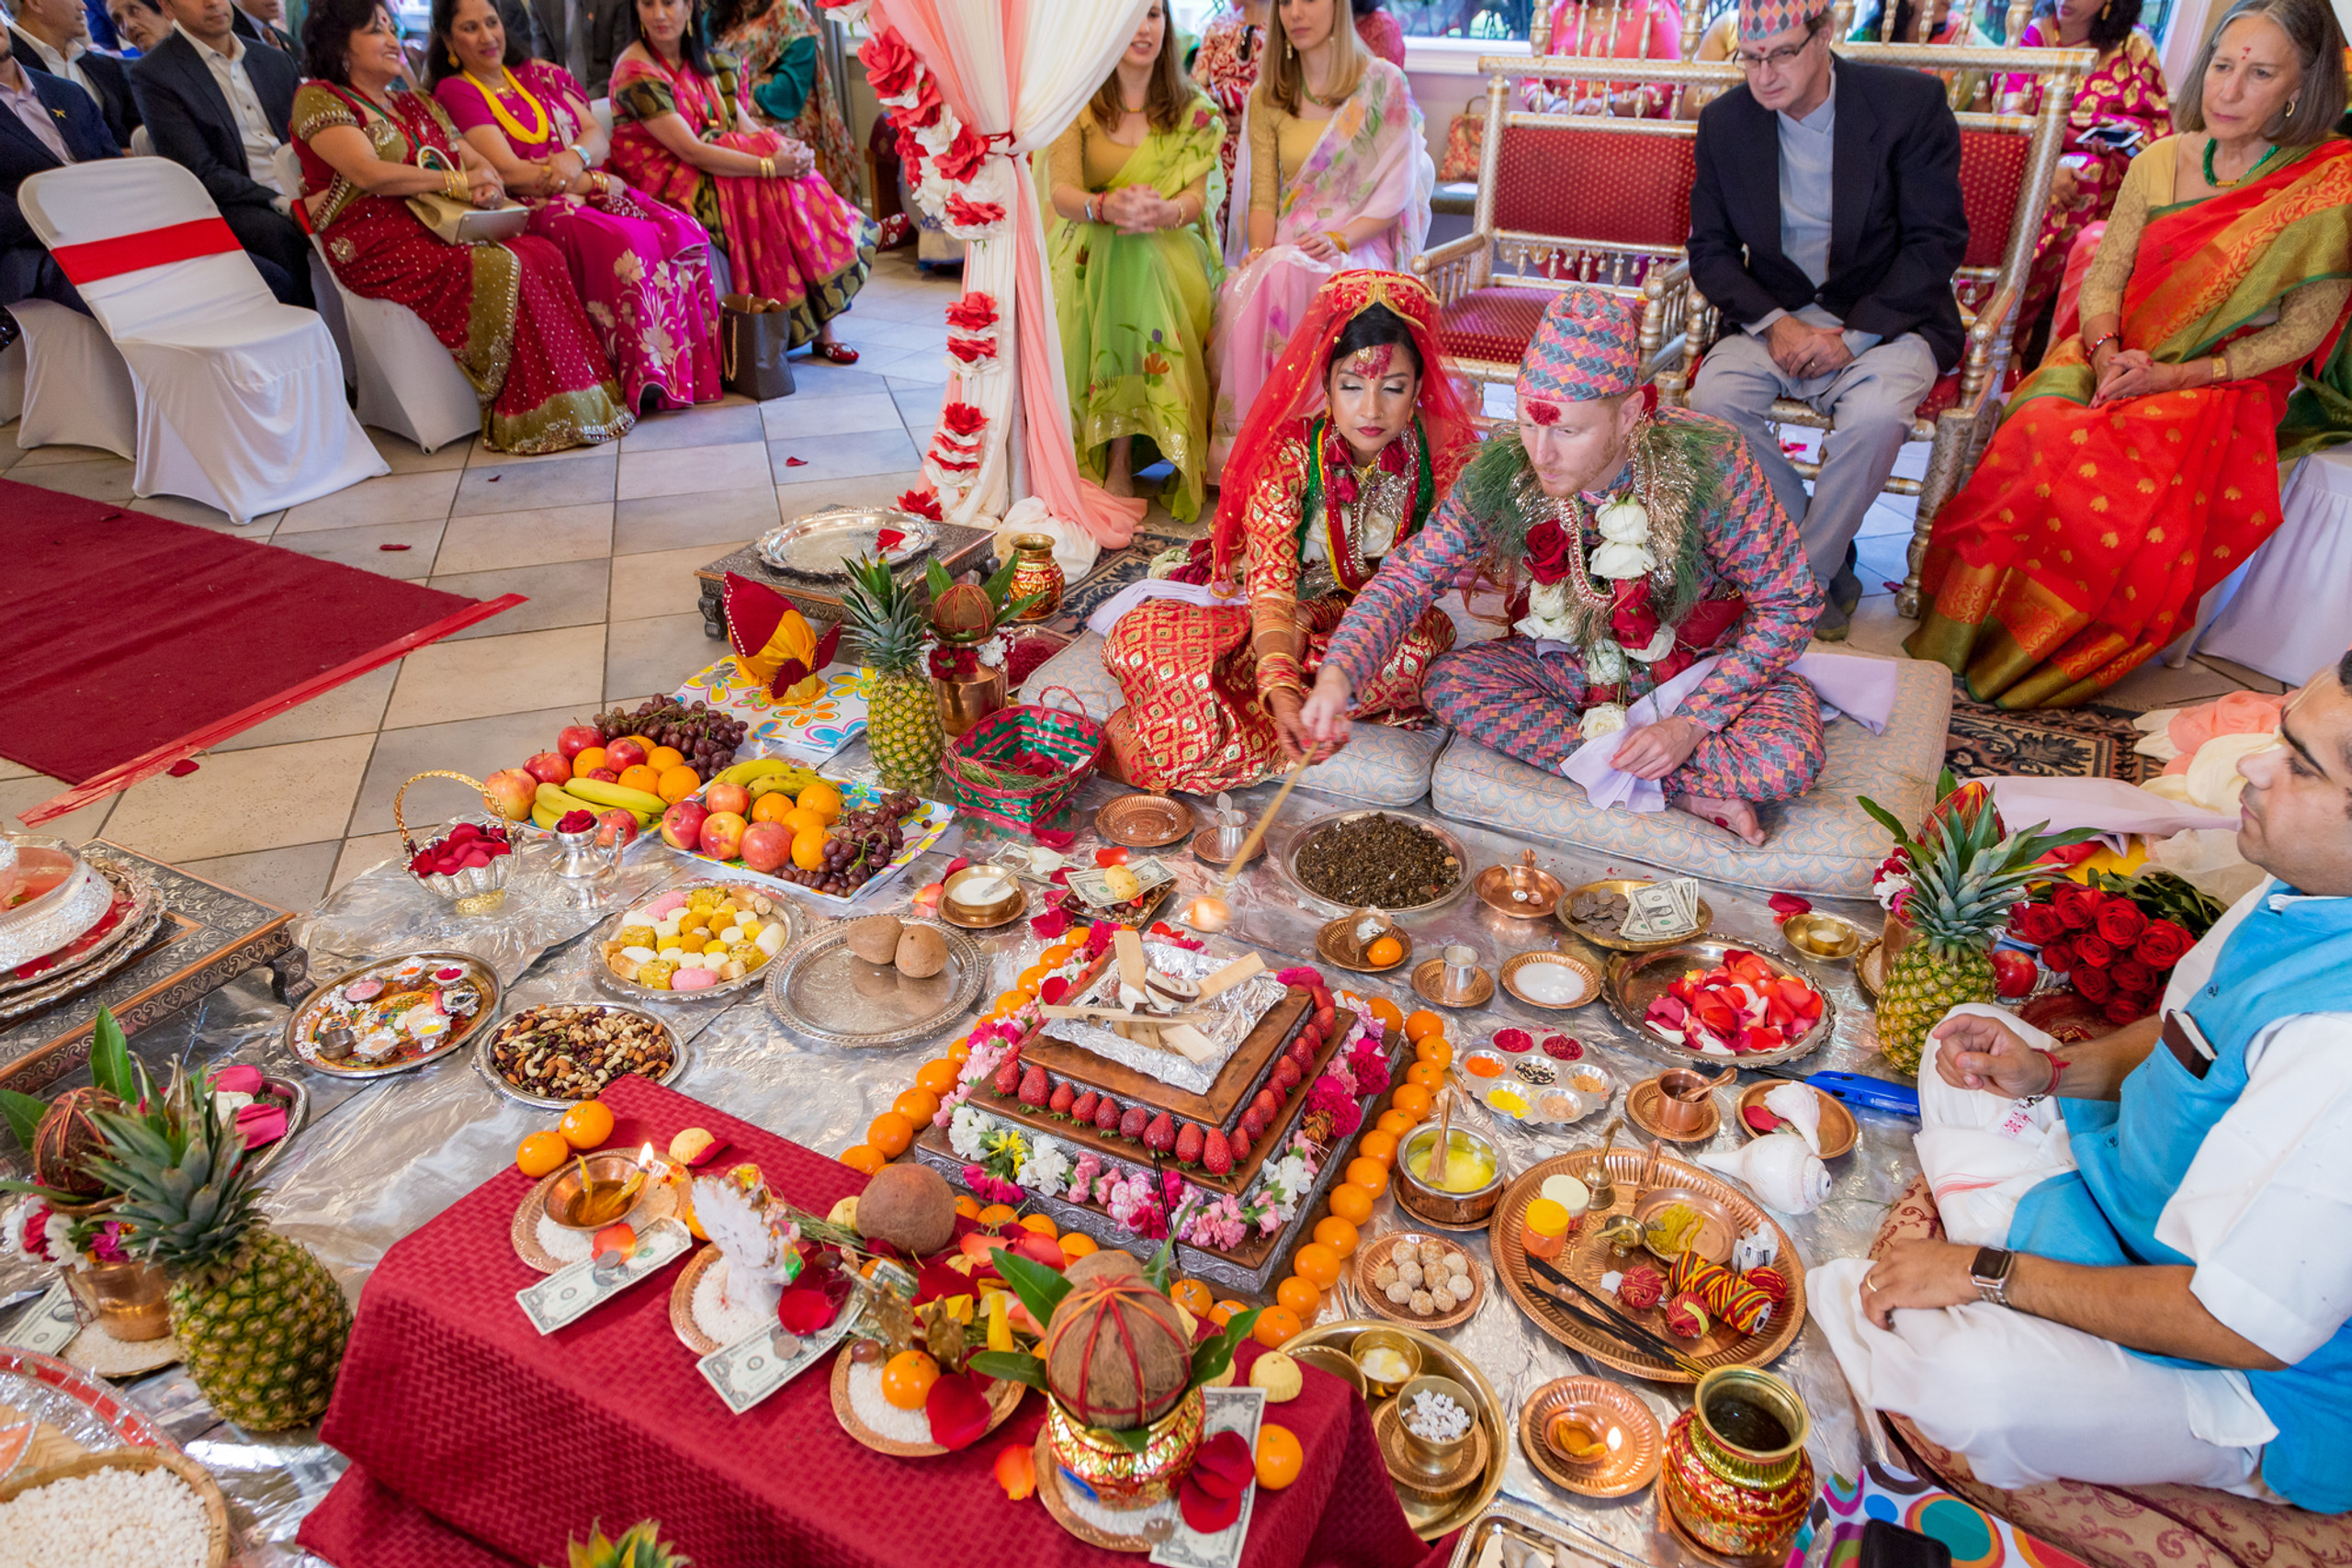 The bride and groom performing traditional rituals during the Hindu Ceremony at the ISKCON of DC in Potomac, Maryland.